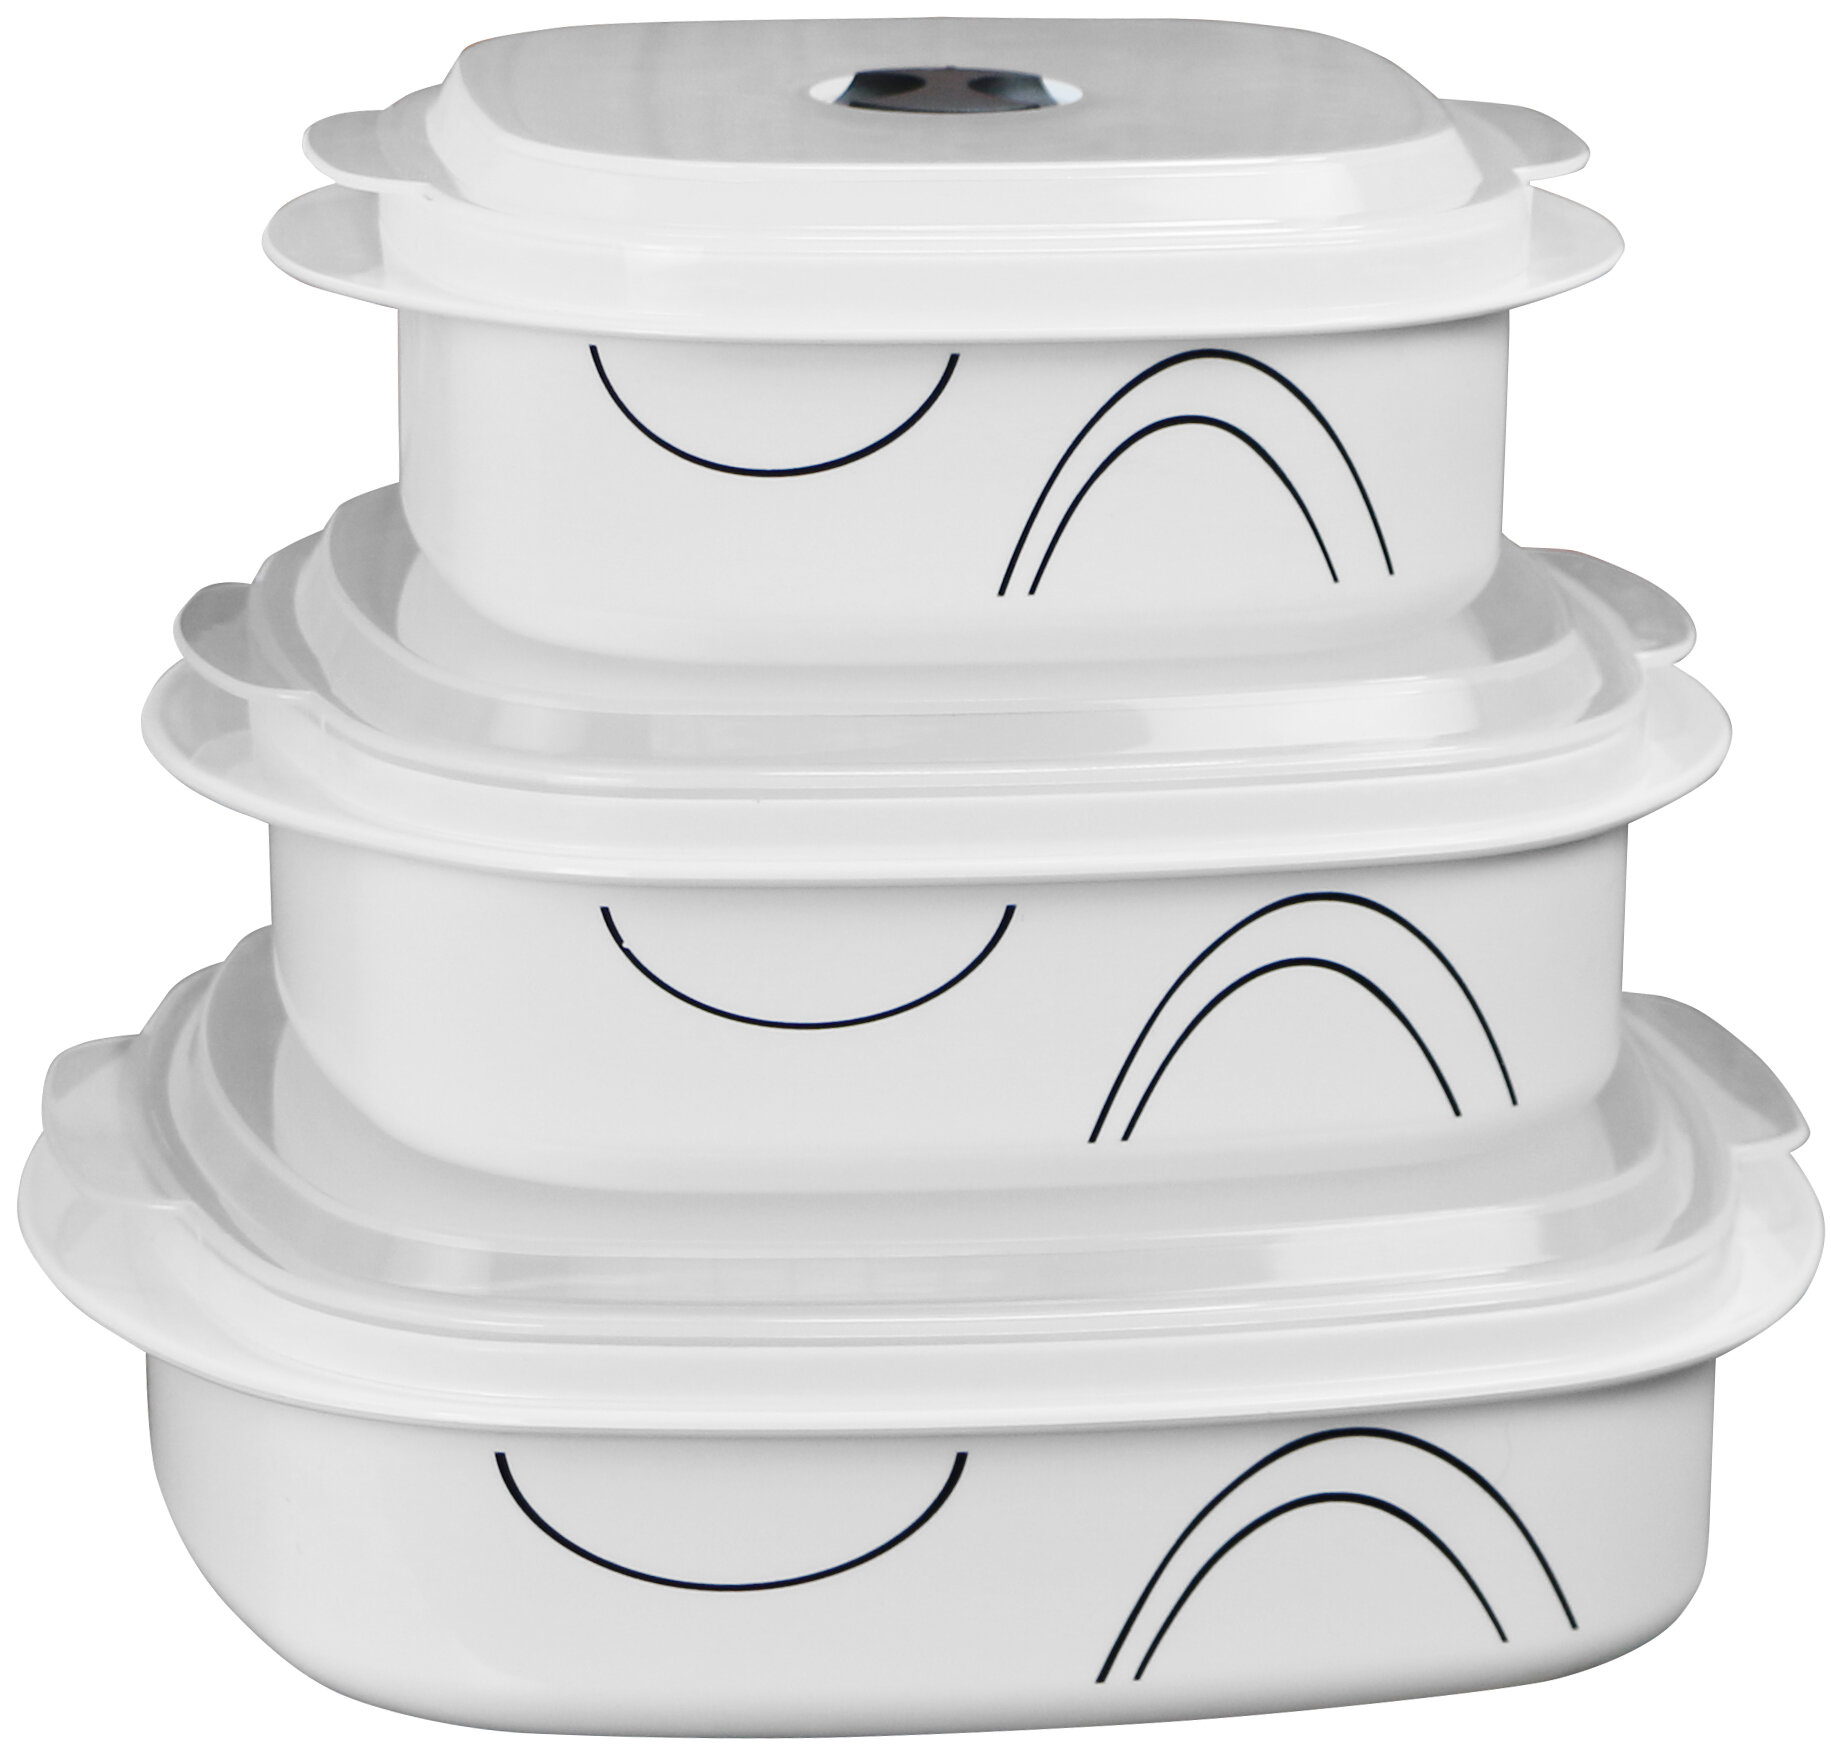 Corelle Simple Lines Microwave Cookware 3 Container Food Storage Set Reviews Wayfair